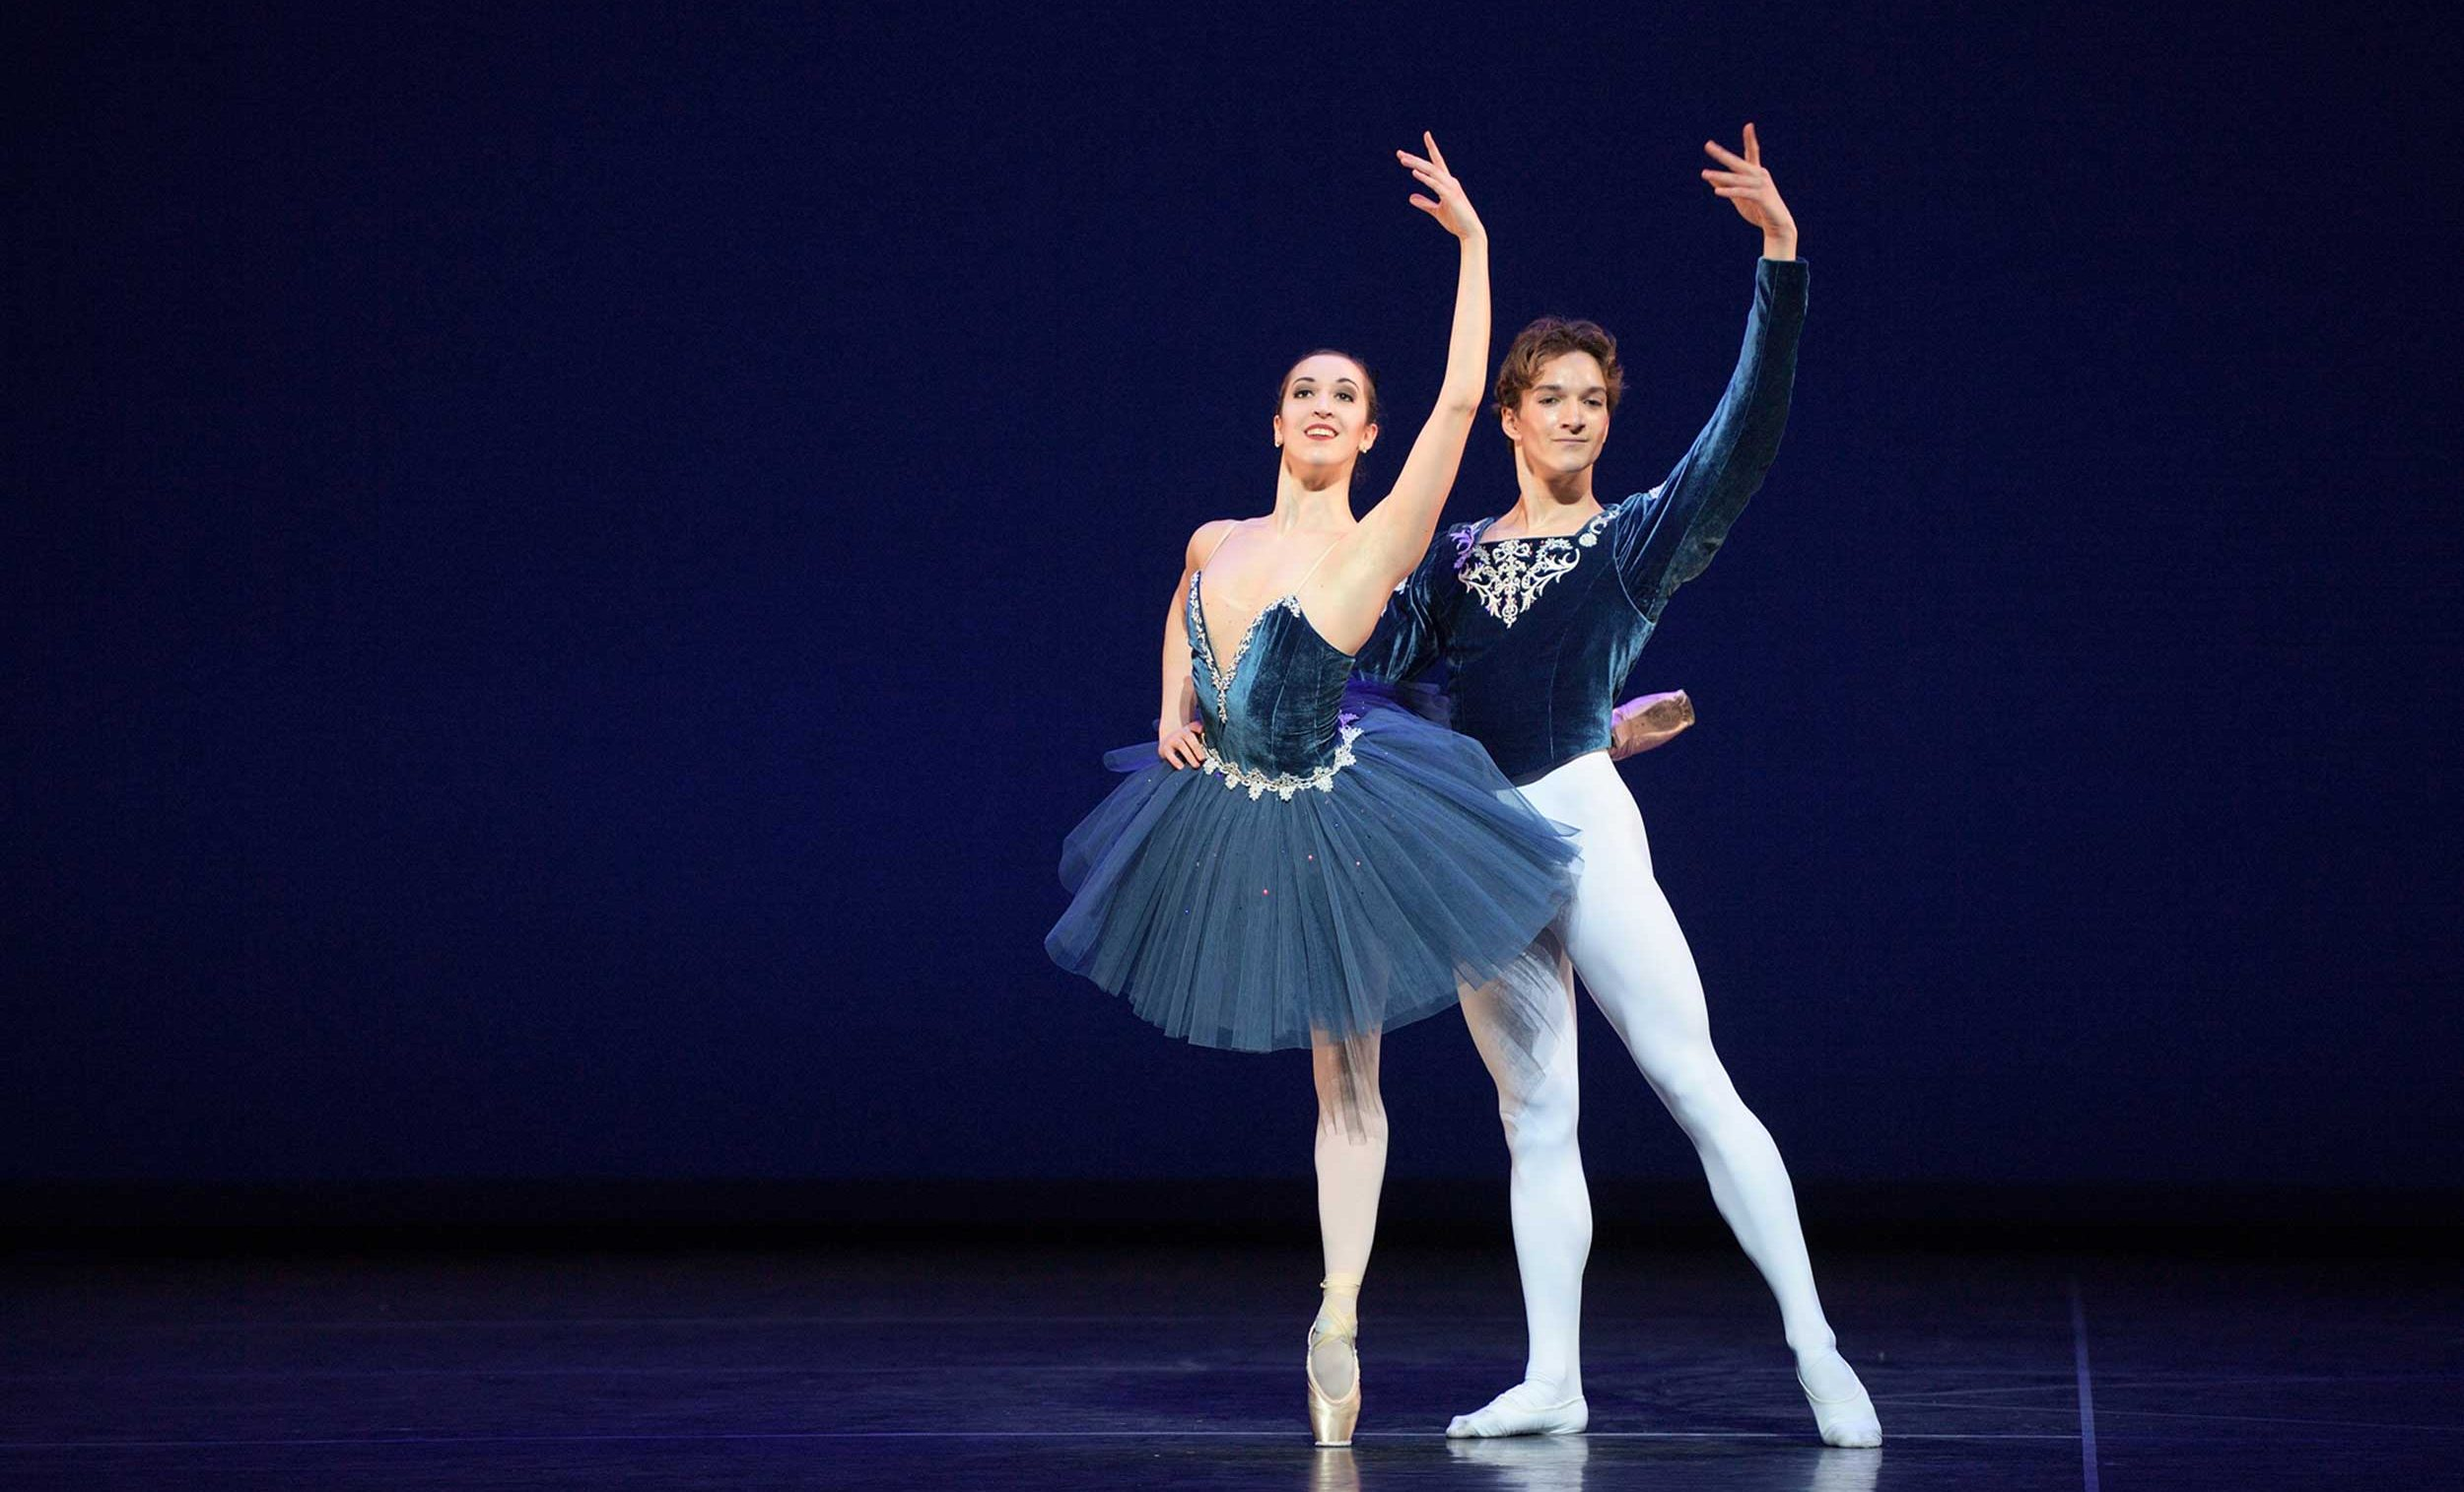 WEB-Alice-Bellini-and-Shale-Wagman-performing-Grand-Pas-Classique-(c)-Laurent-Liotardo-(2)